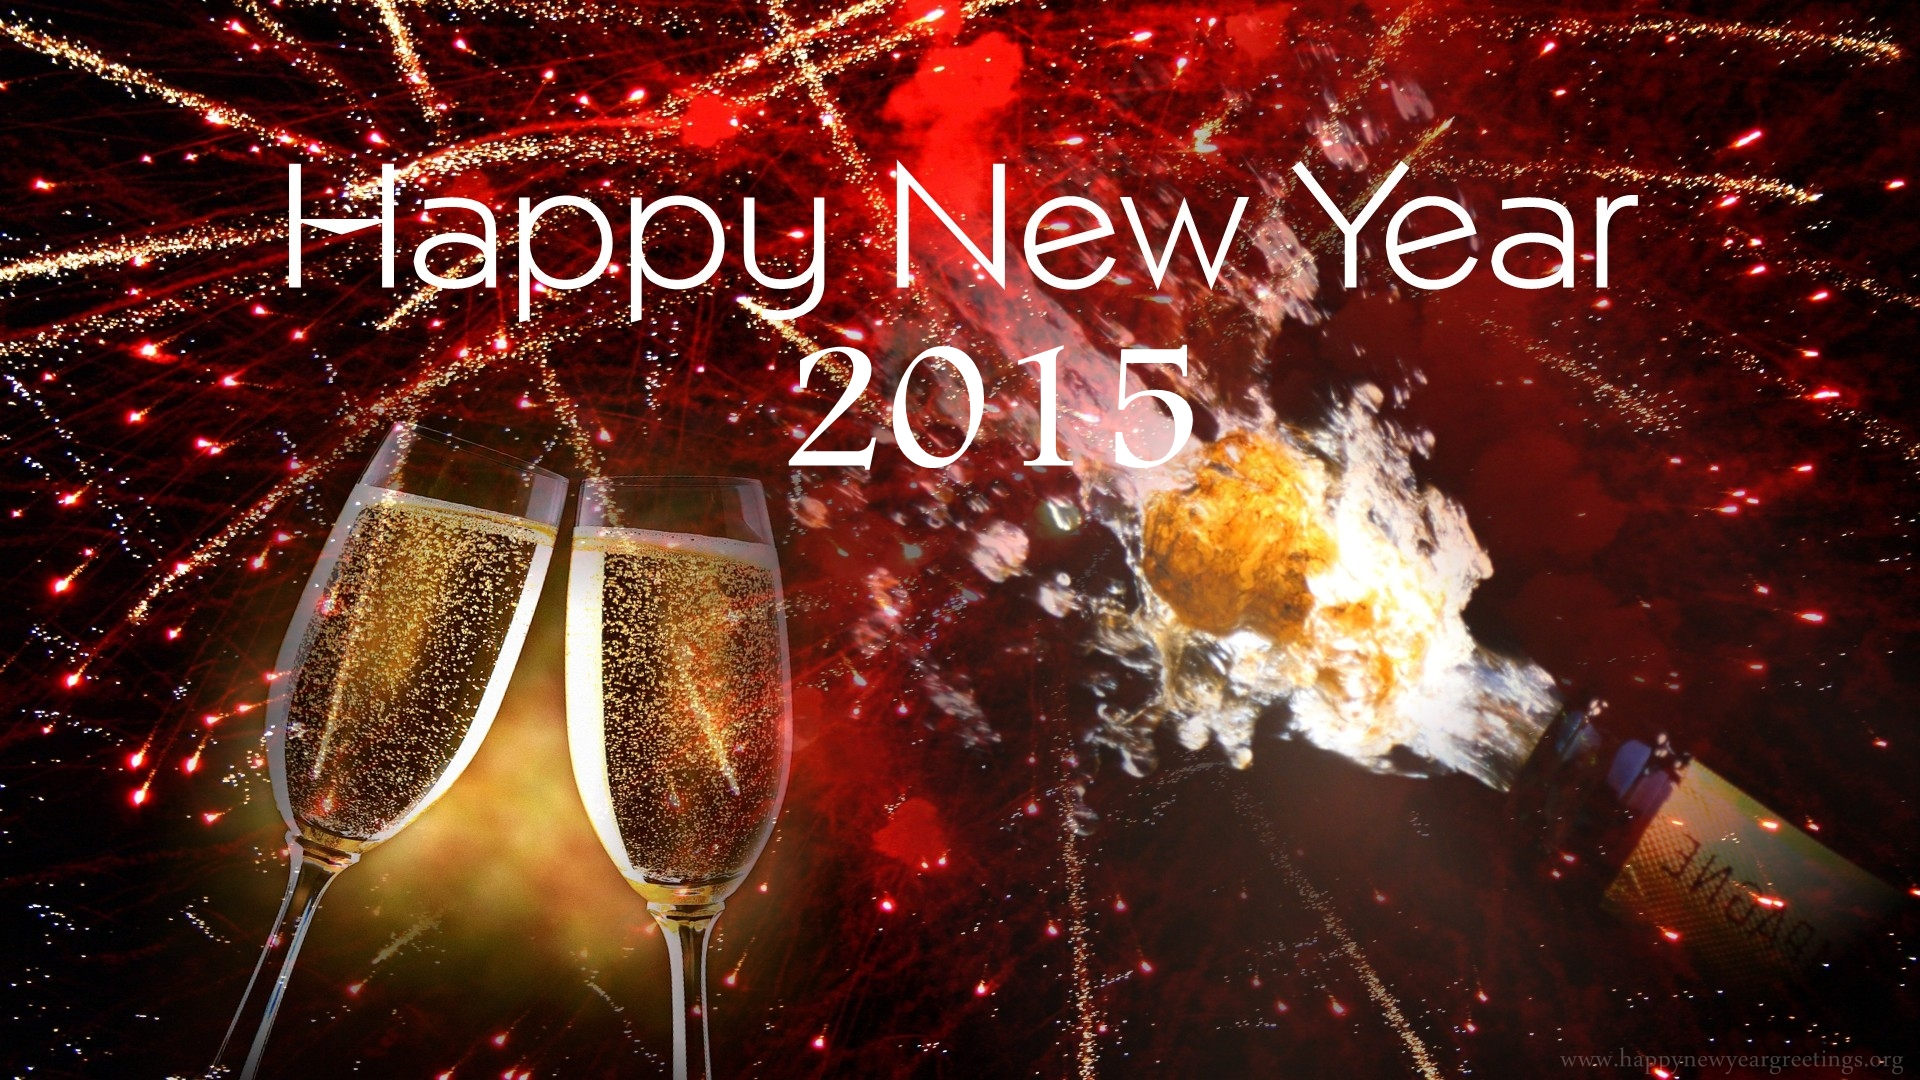 Happy New Year from Keystone Community Living!